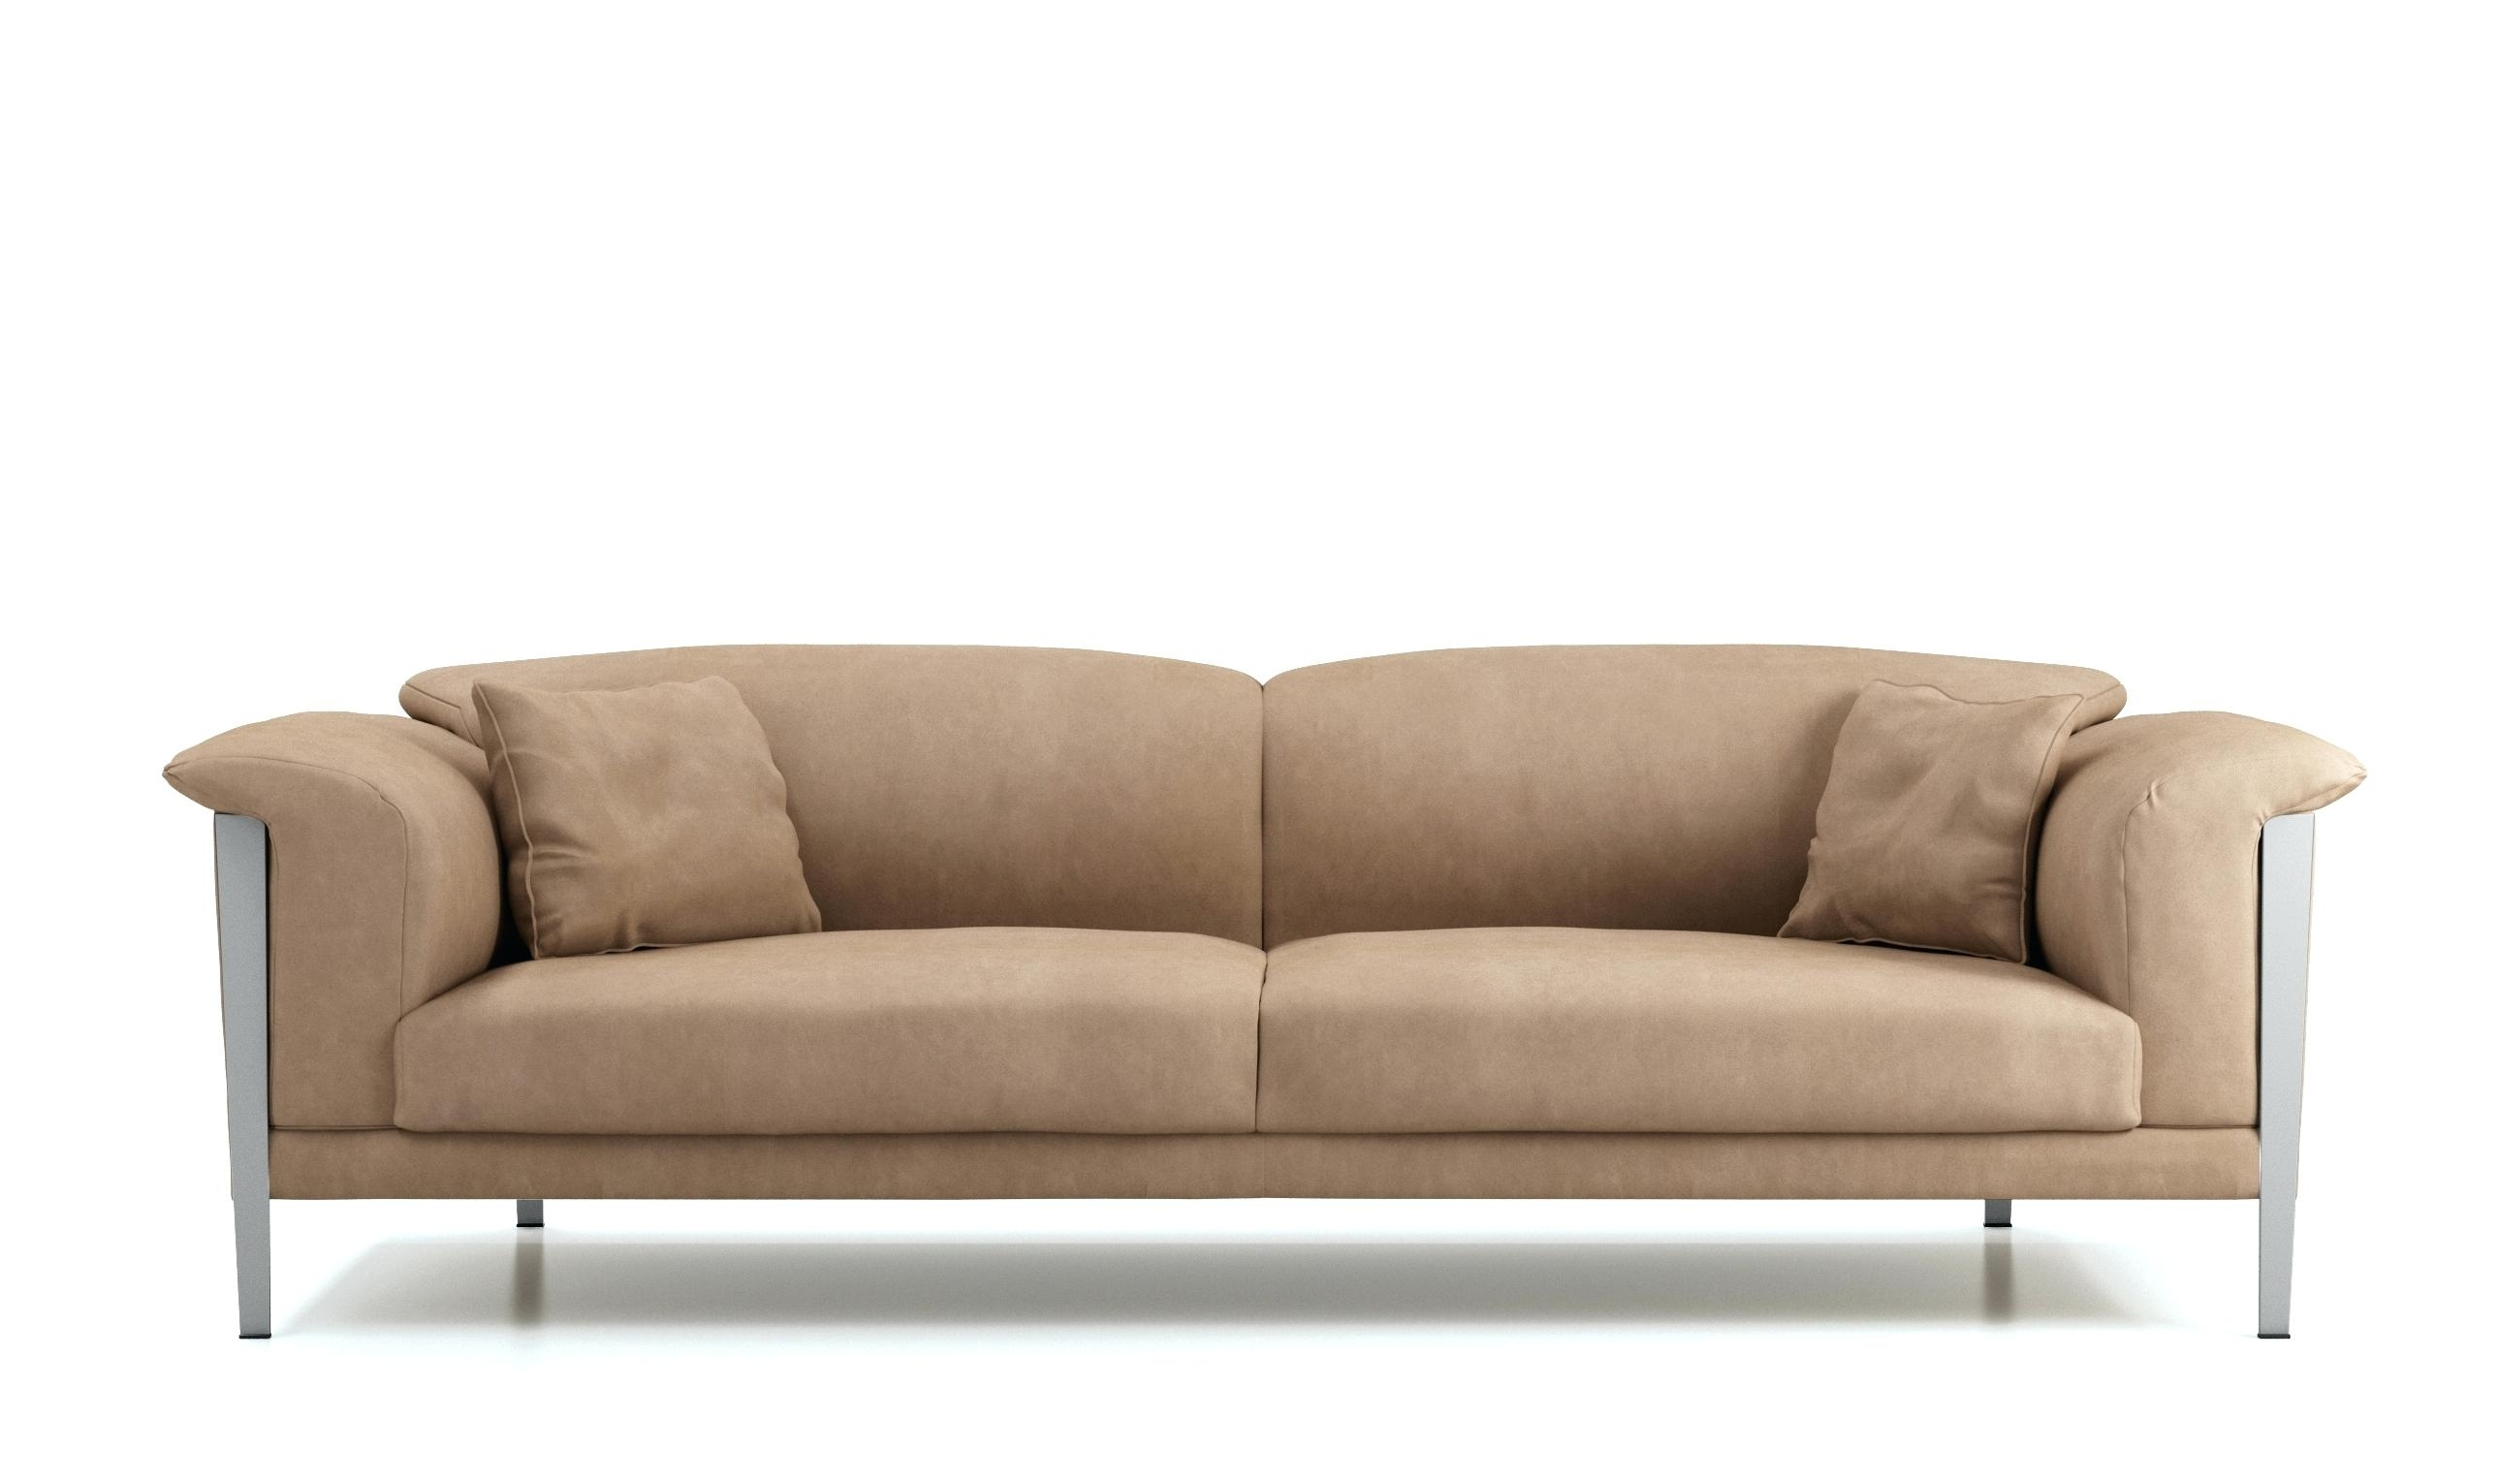 leather sofa cleaning services in dubai cheers clayton motion costco 10 collection of soft sofas ideas